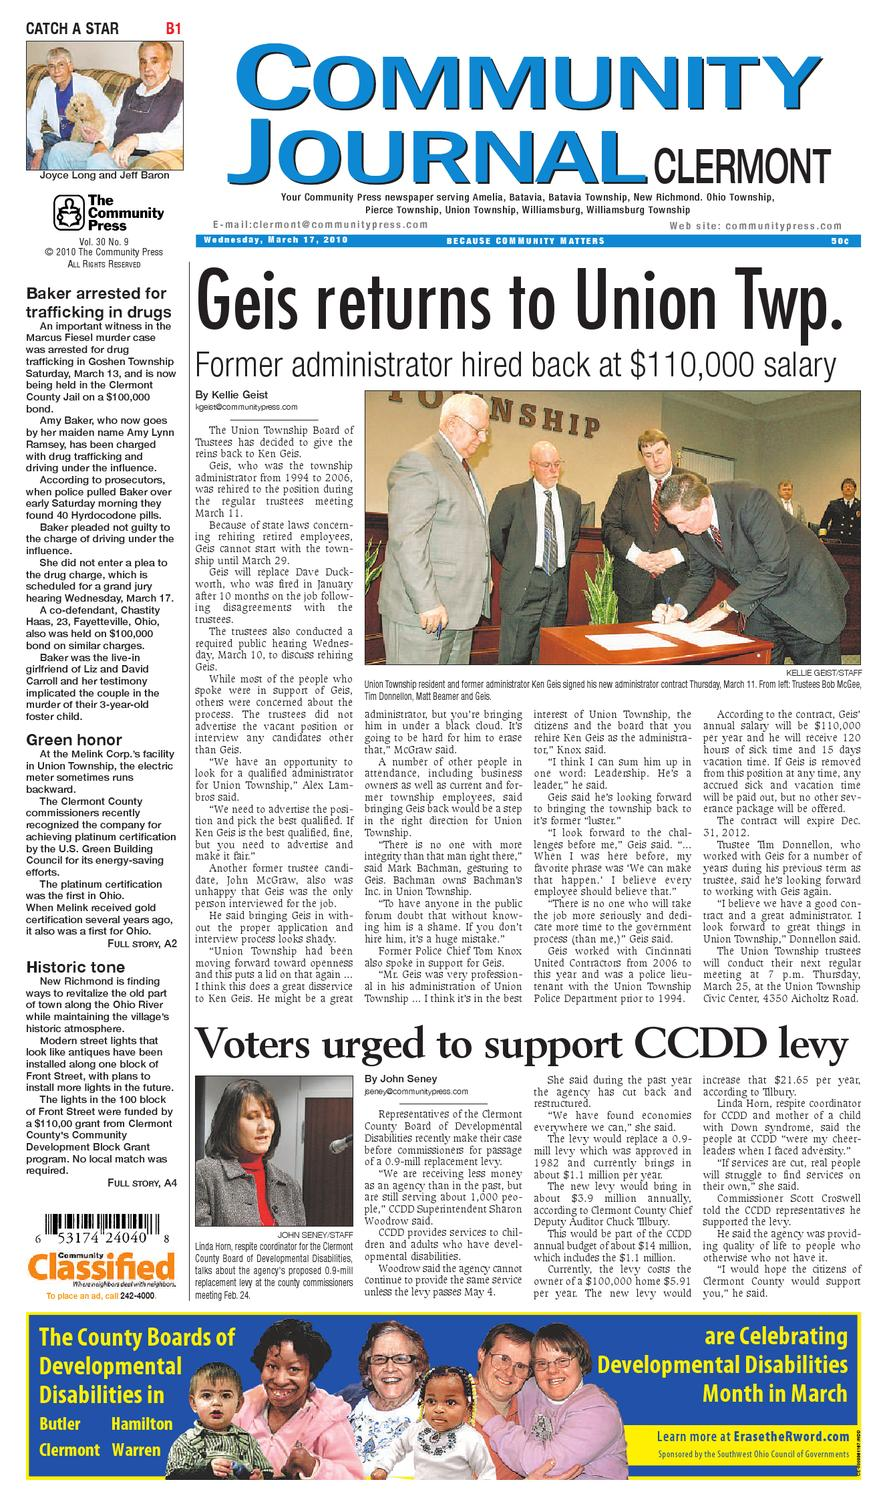 community-journal-clermont-031710 by Enquirer Media - issuu f434f46c81